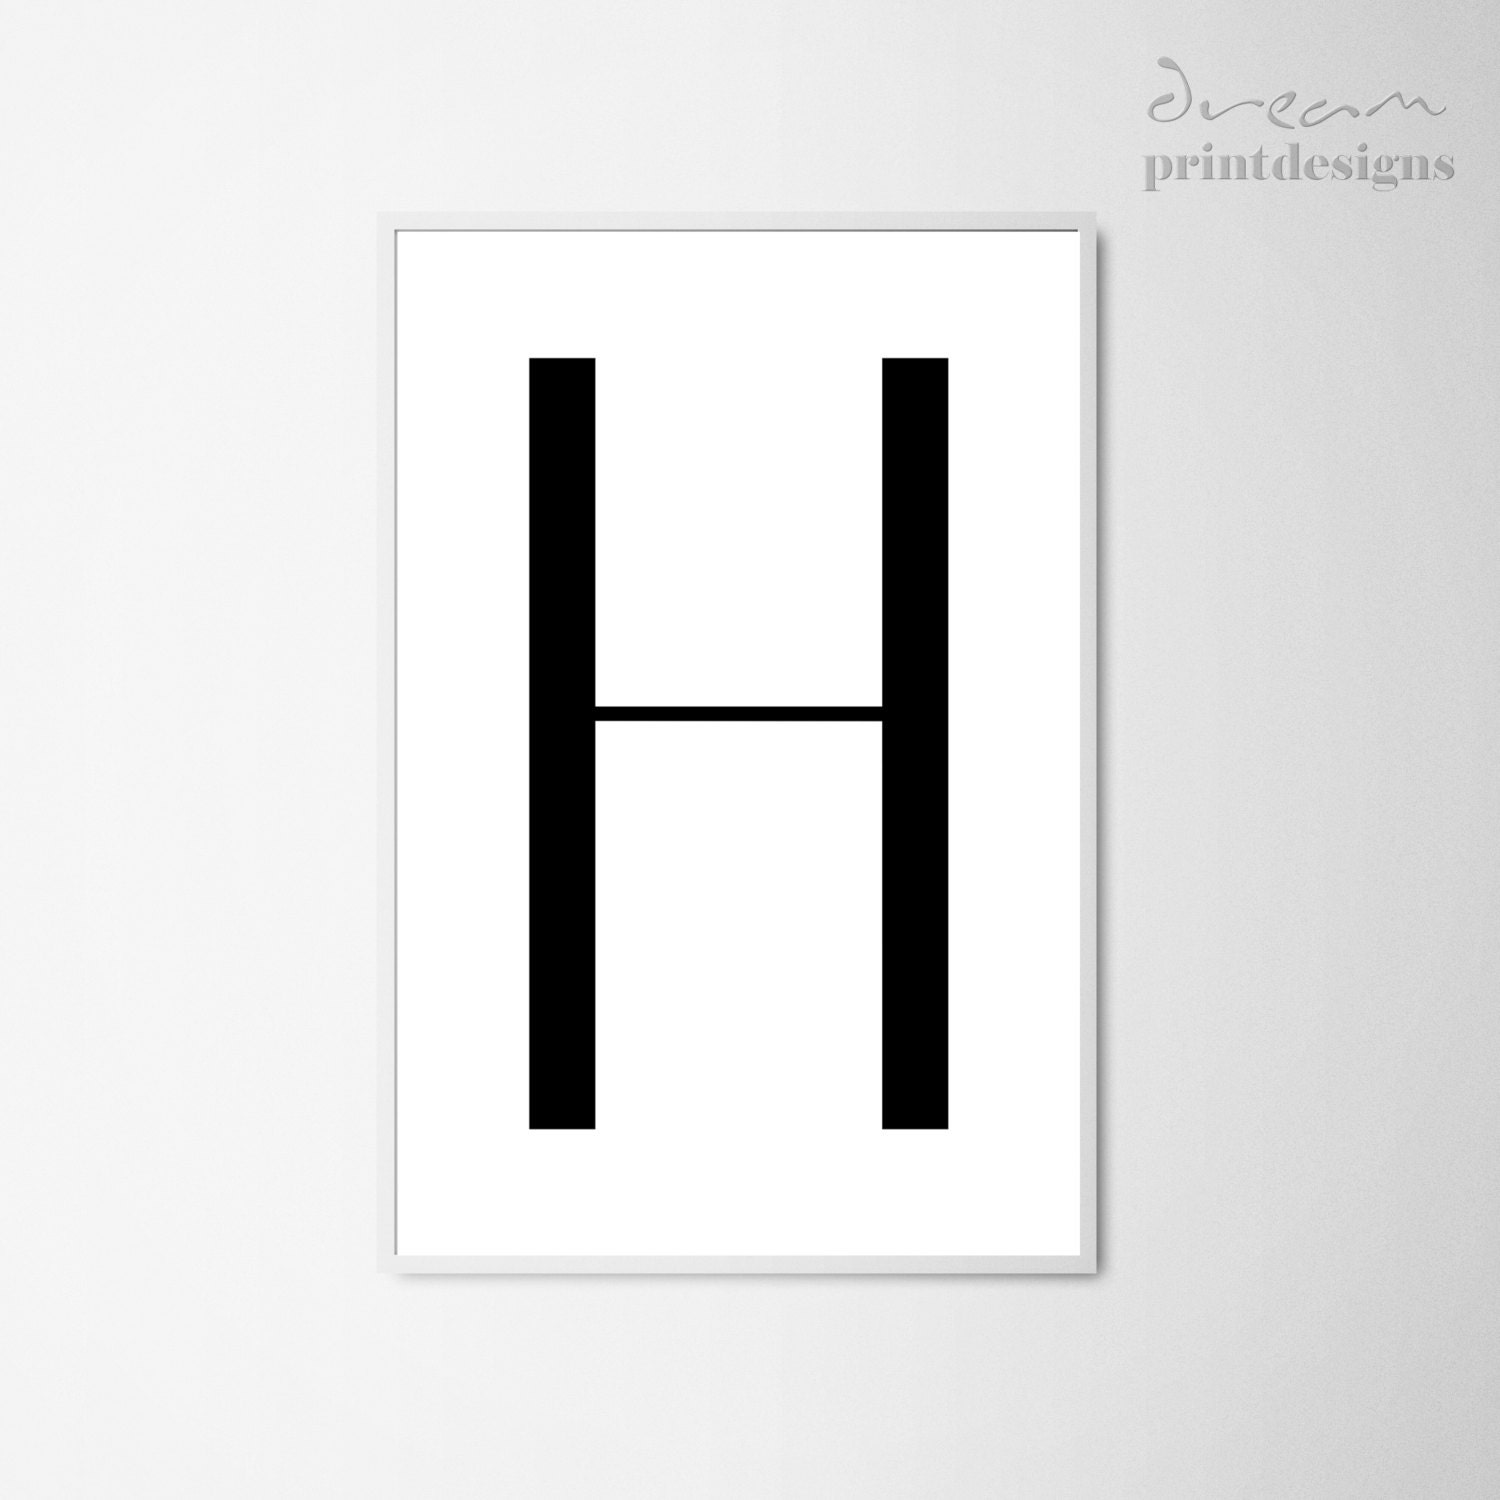 picture about Printable Letter H named Letter H Printable Poster, Scandinavian Letter Print, Scandinavian Poster, Letter H Print, Letter H Wall Decor, Electronic Print, Nordic Print